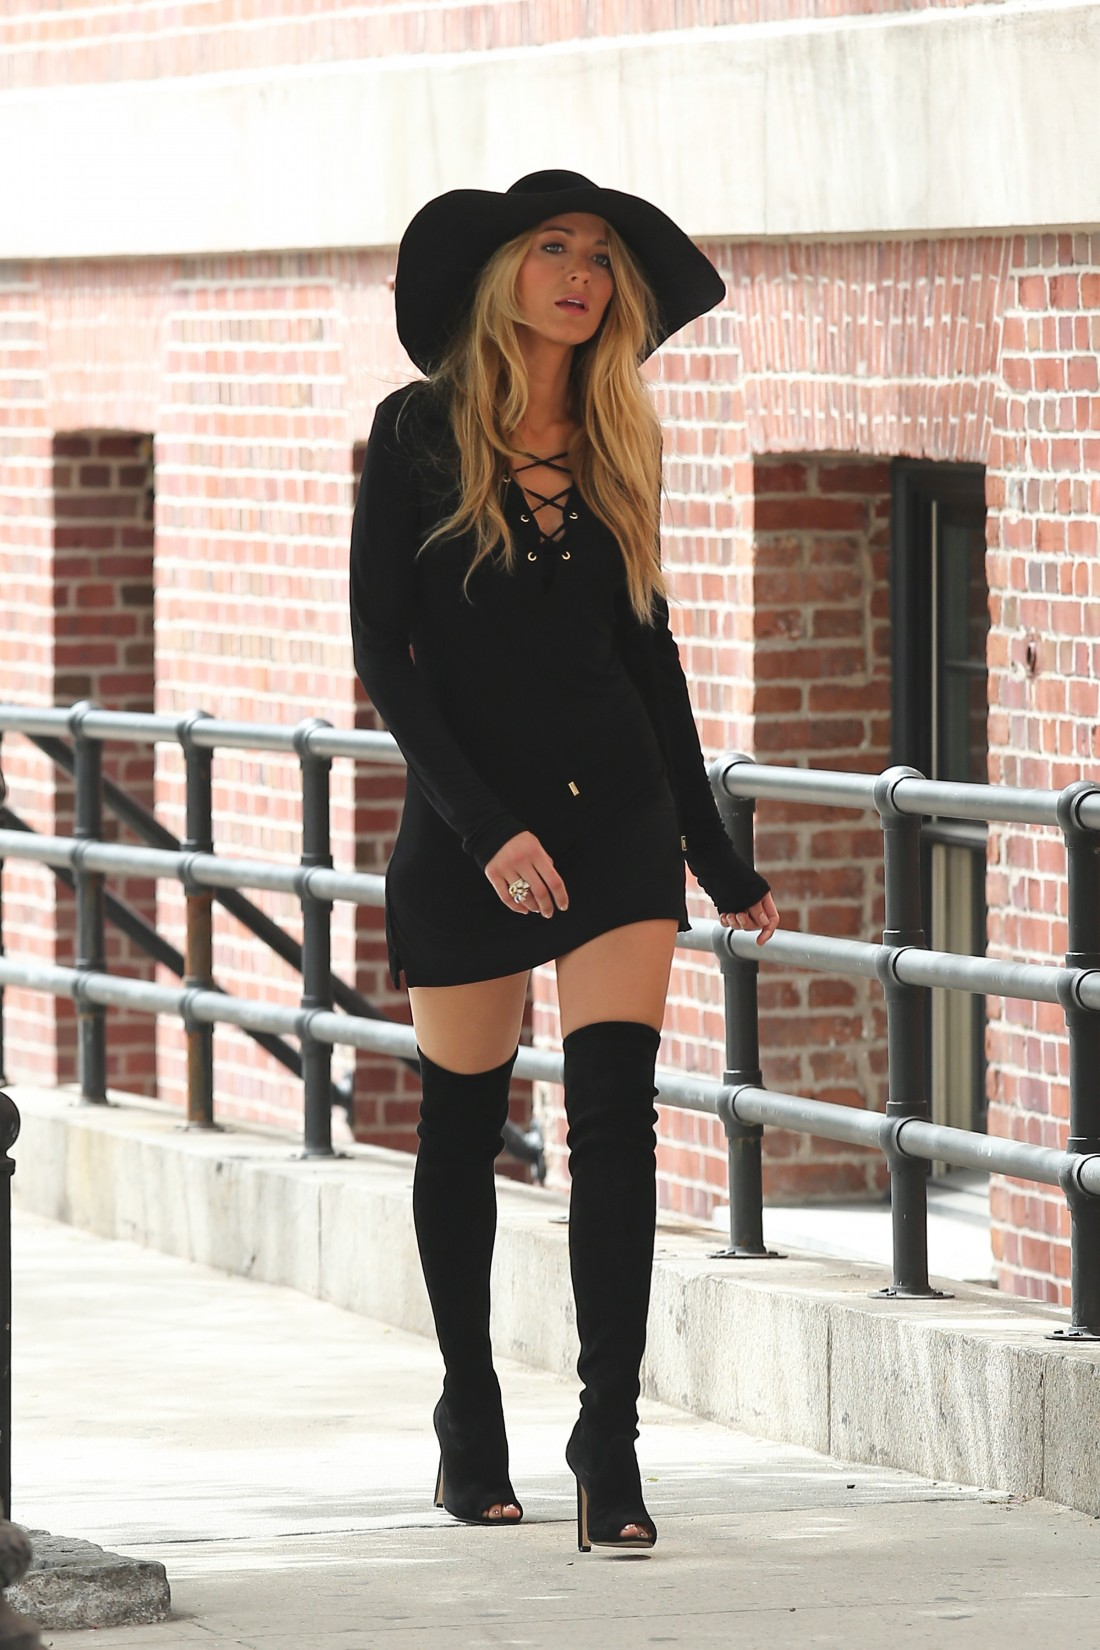 Blake Lively seen having a photoshoot in the West Village, New York City